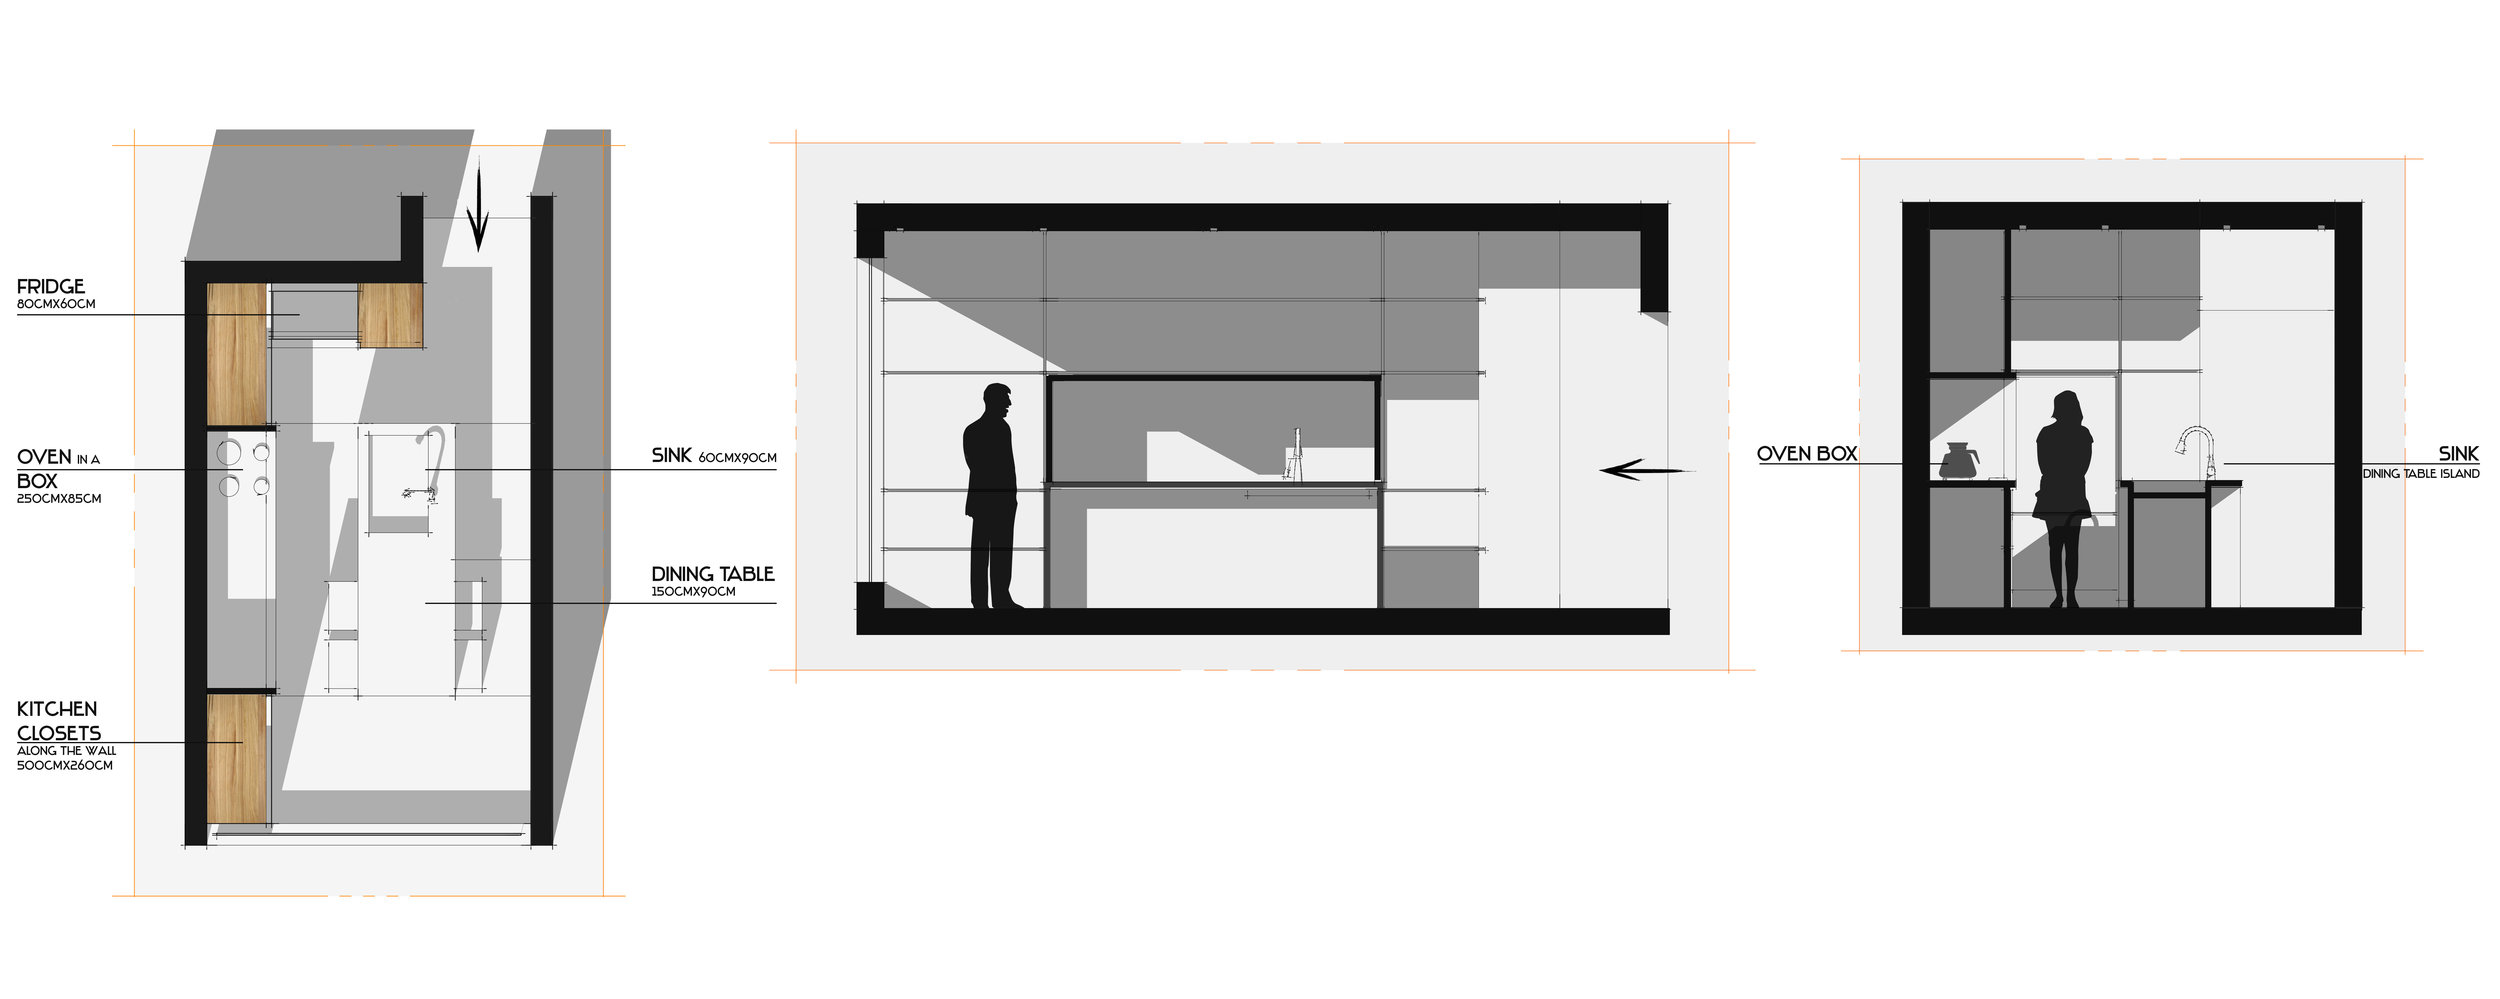 kitchen design plan.jpg